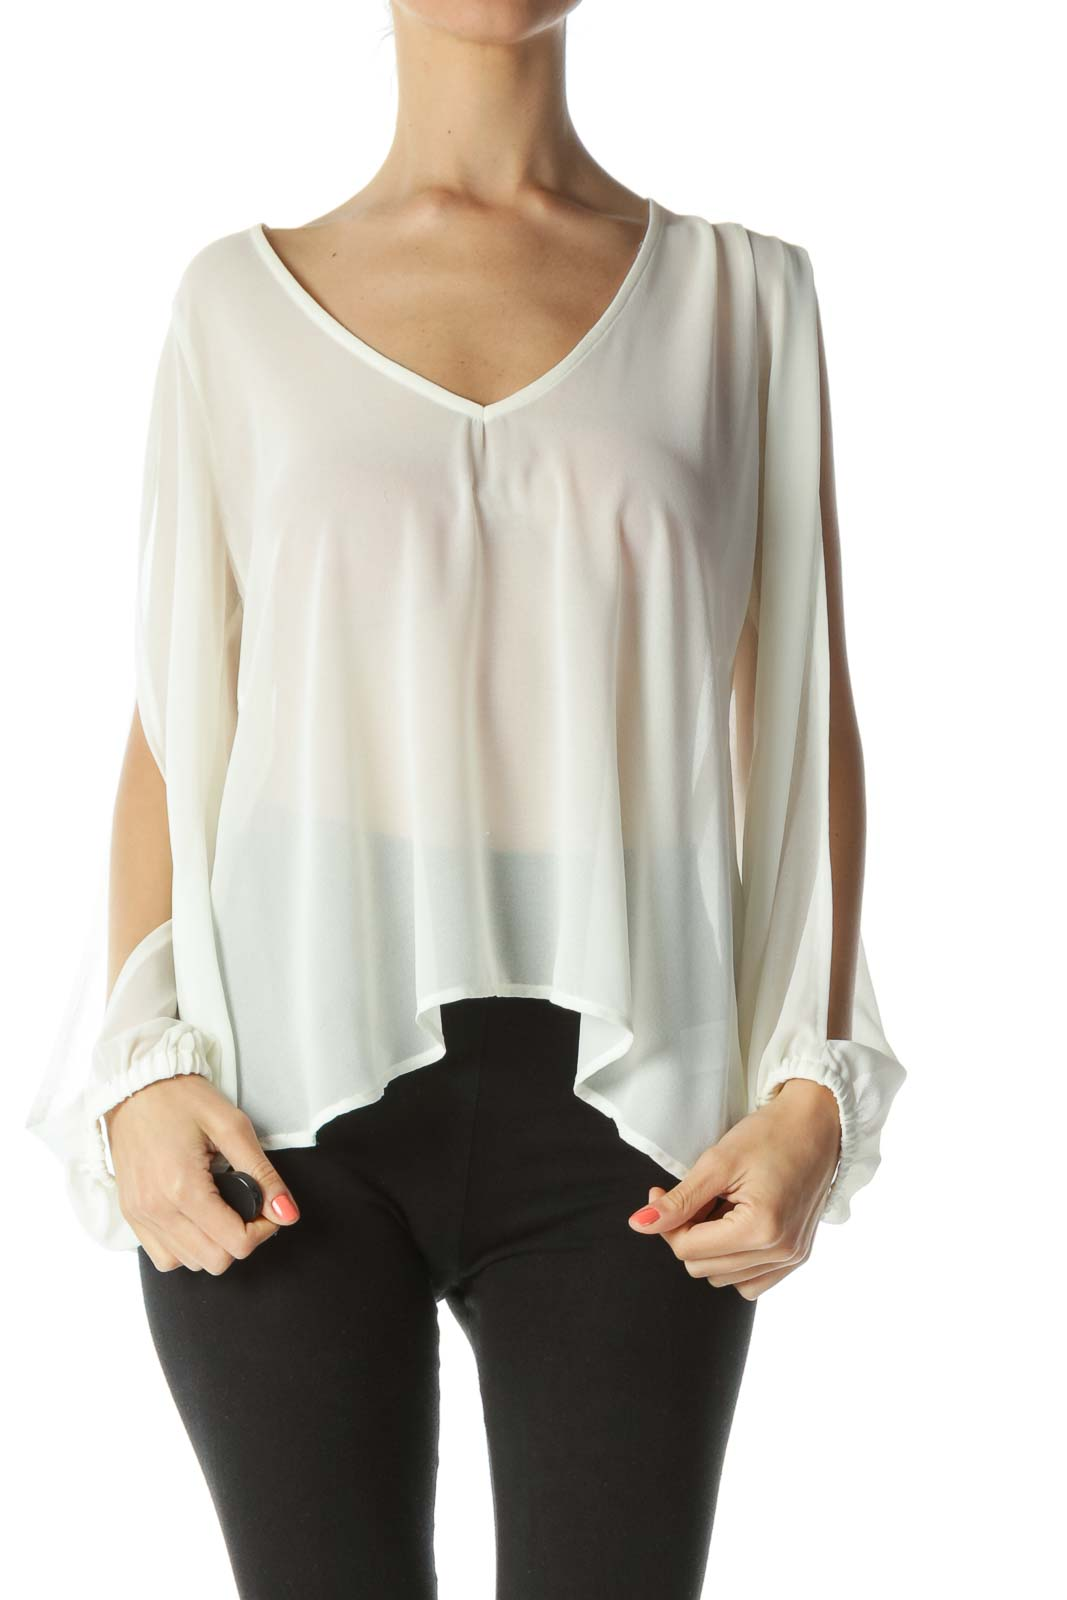 Cream Translucent Slitted-Shoulders Long-Sleeve Blouse Front